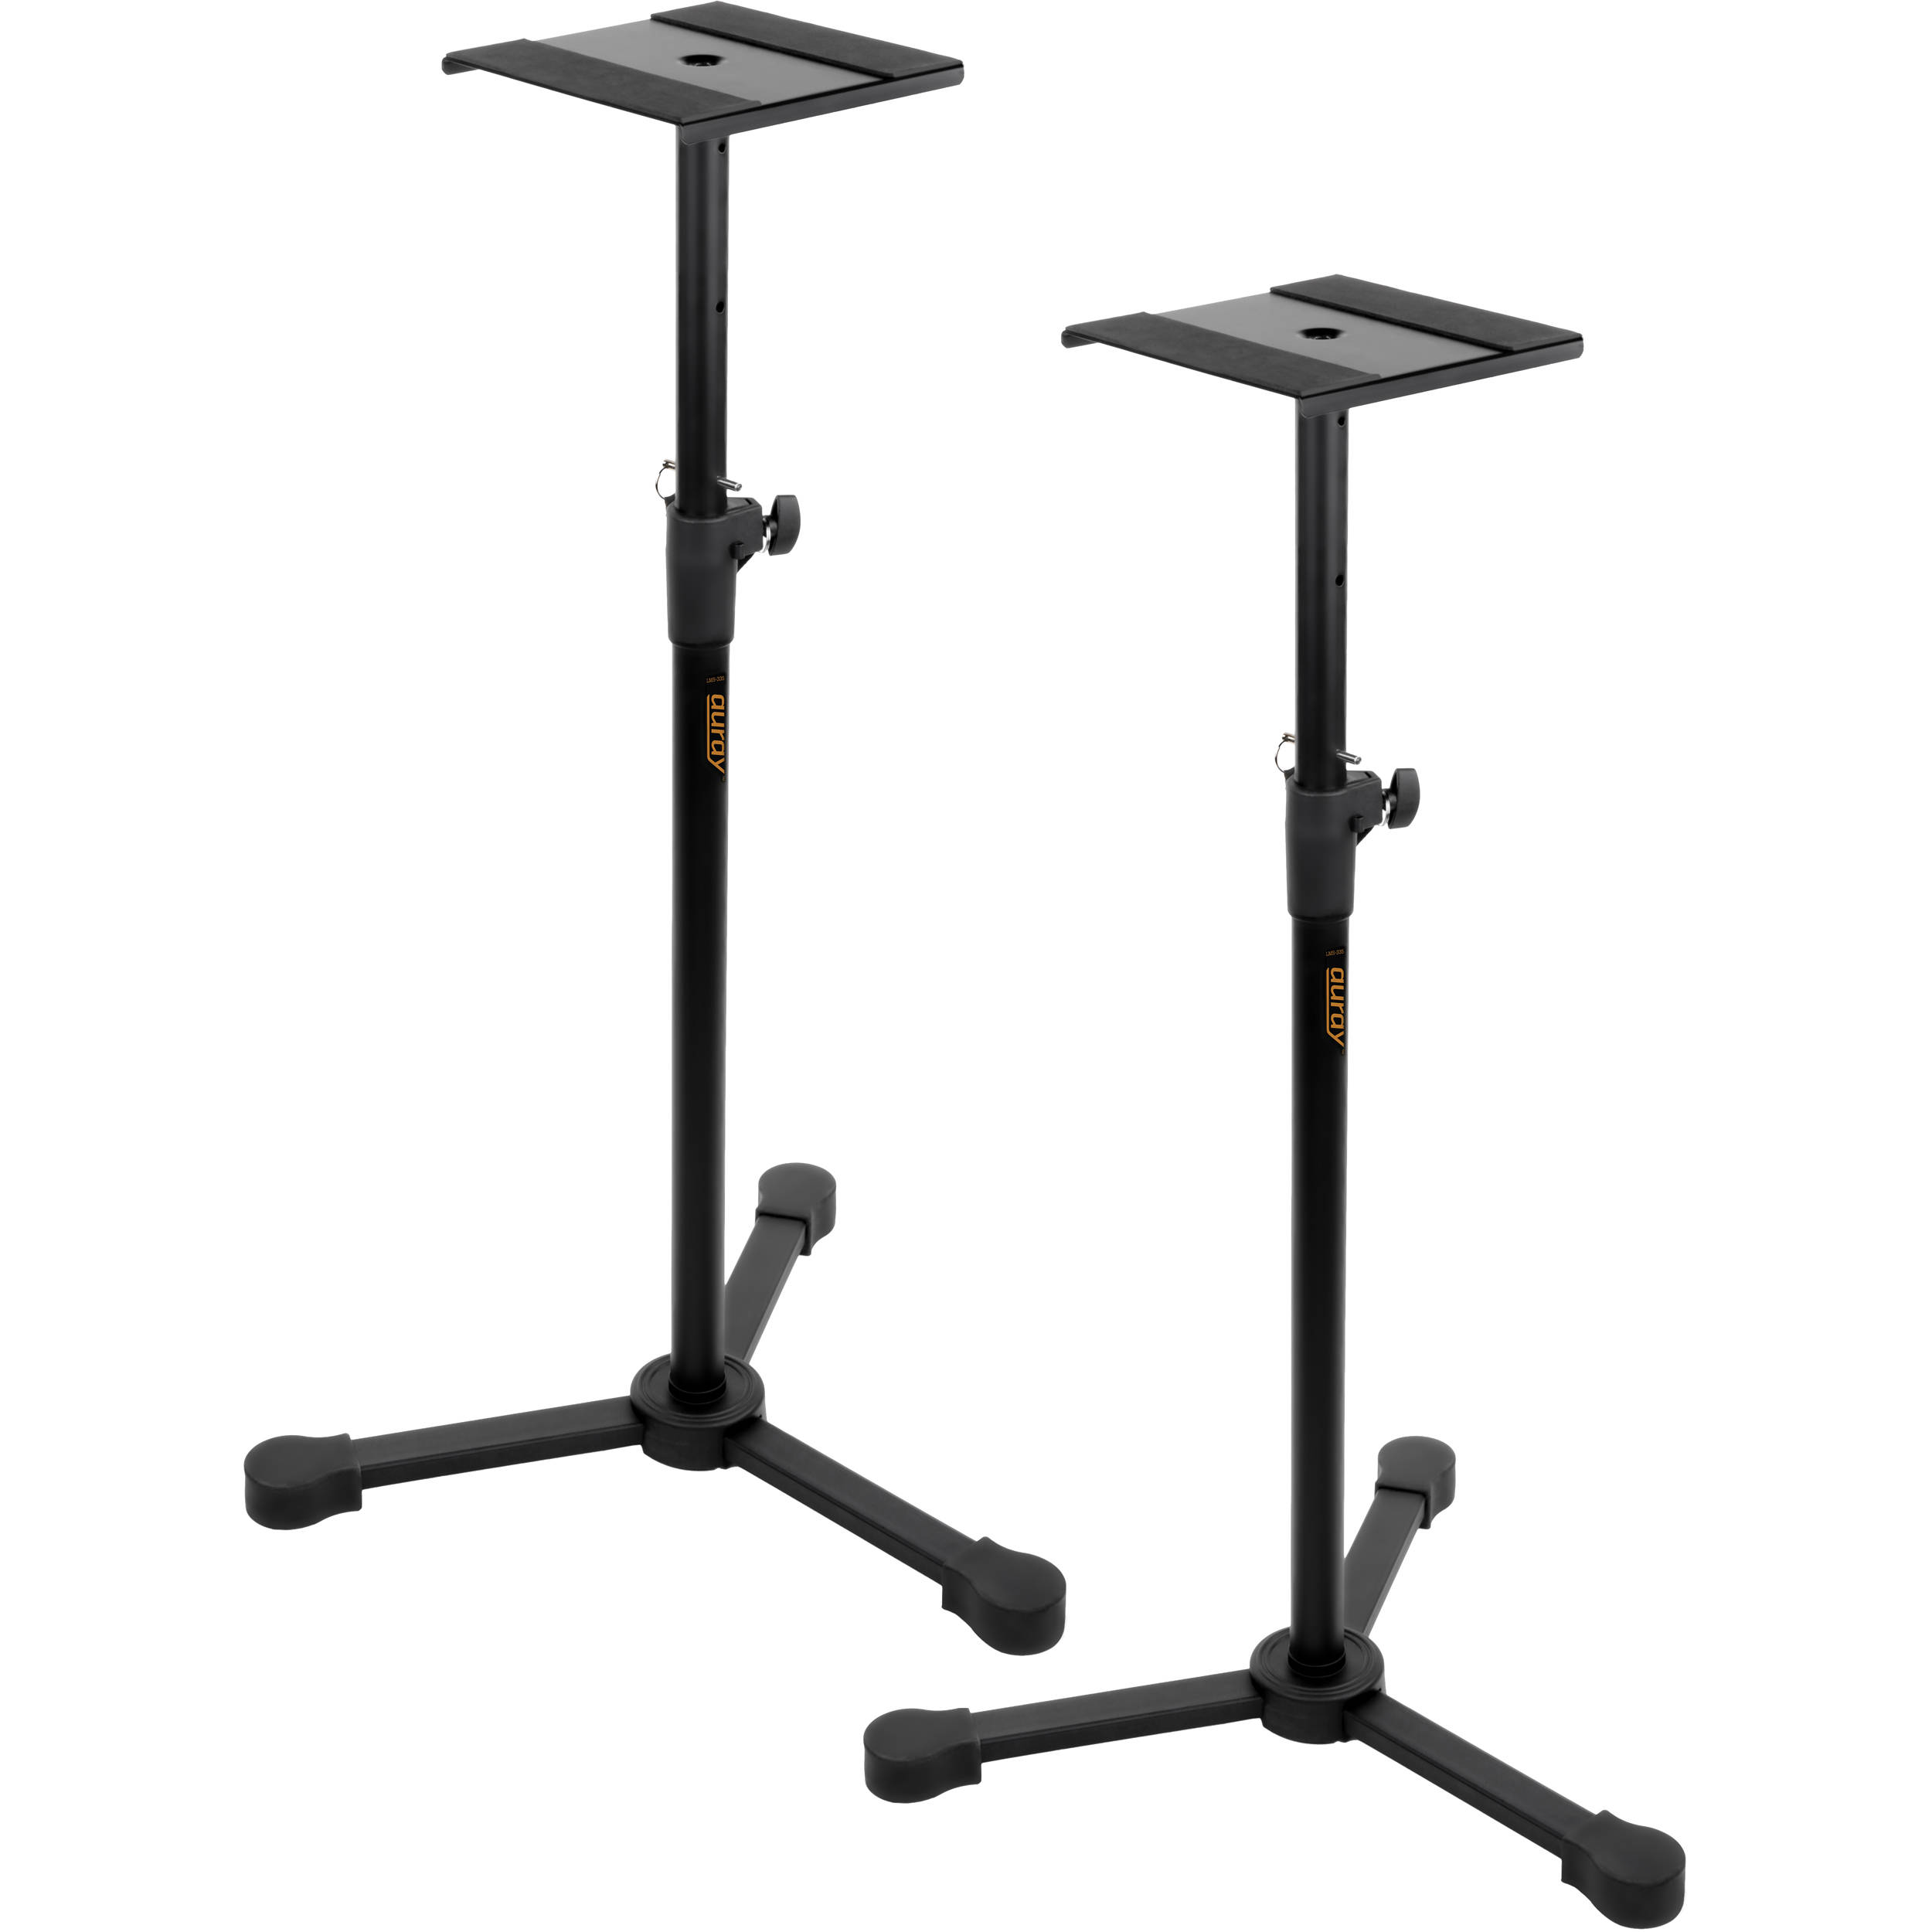 Studio Monitor Stand : auray lms 335 studio monitor stands pair lms 335 b h photo ~ Russianpoet.info Haus und Dekorationen